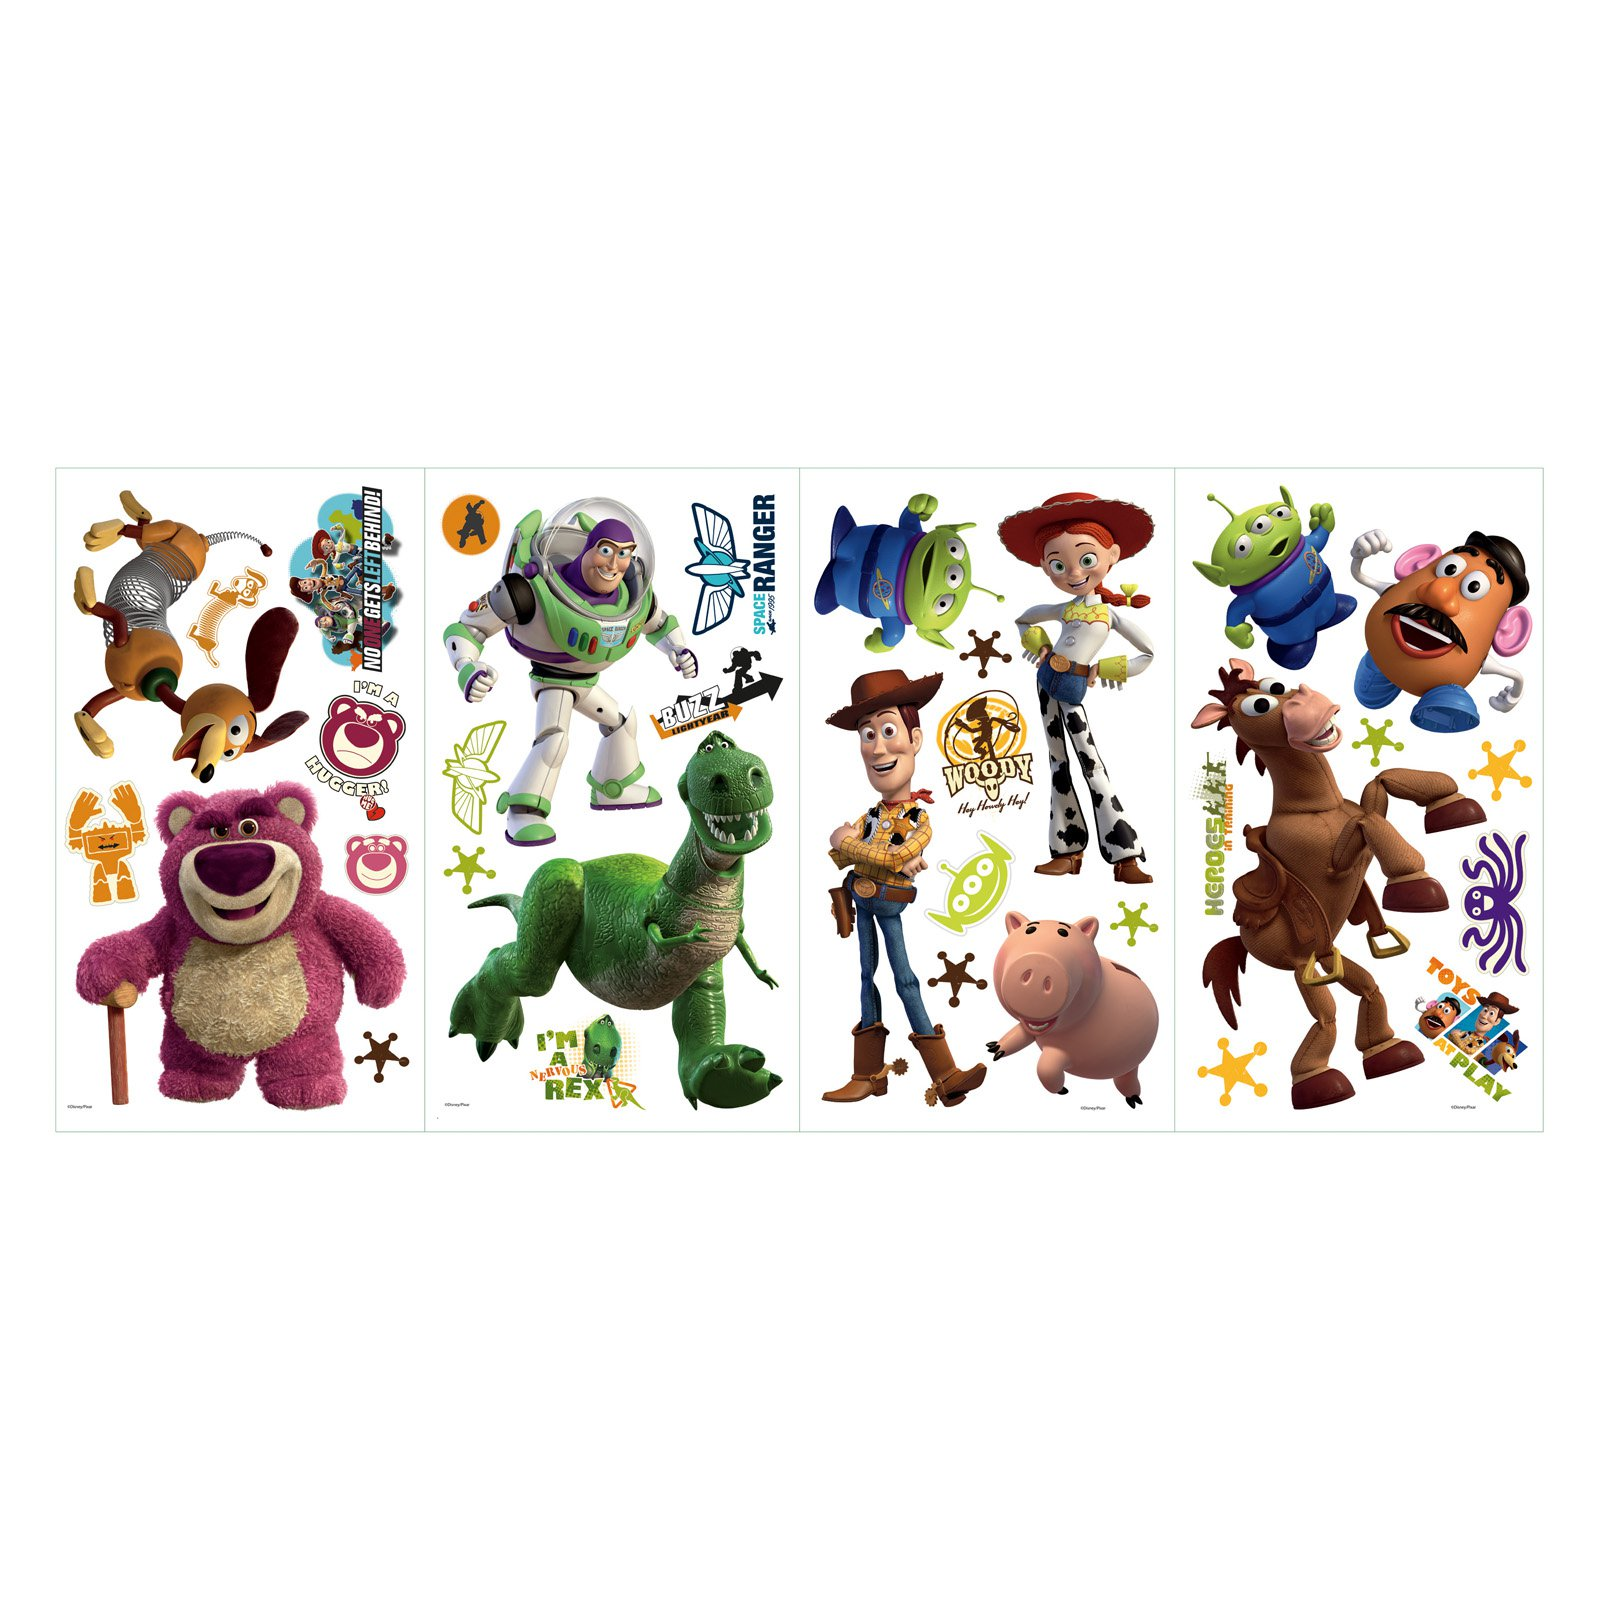 RoomMates Disney Pixar Toy Story 3 Peel & Stick Wall Decals - Glow in the Dark